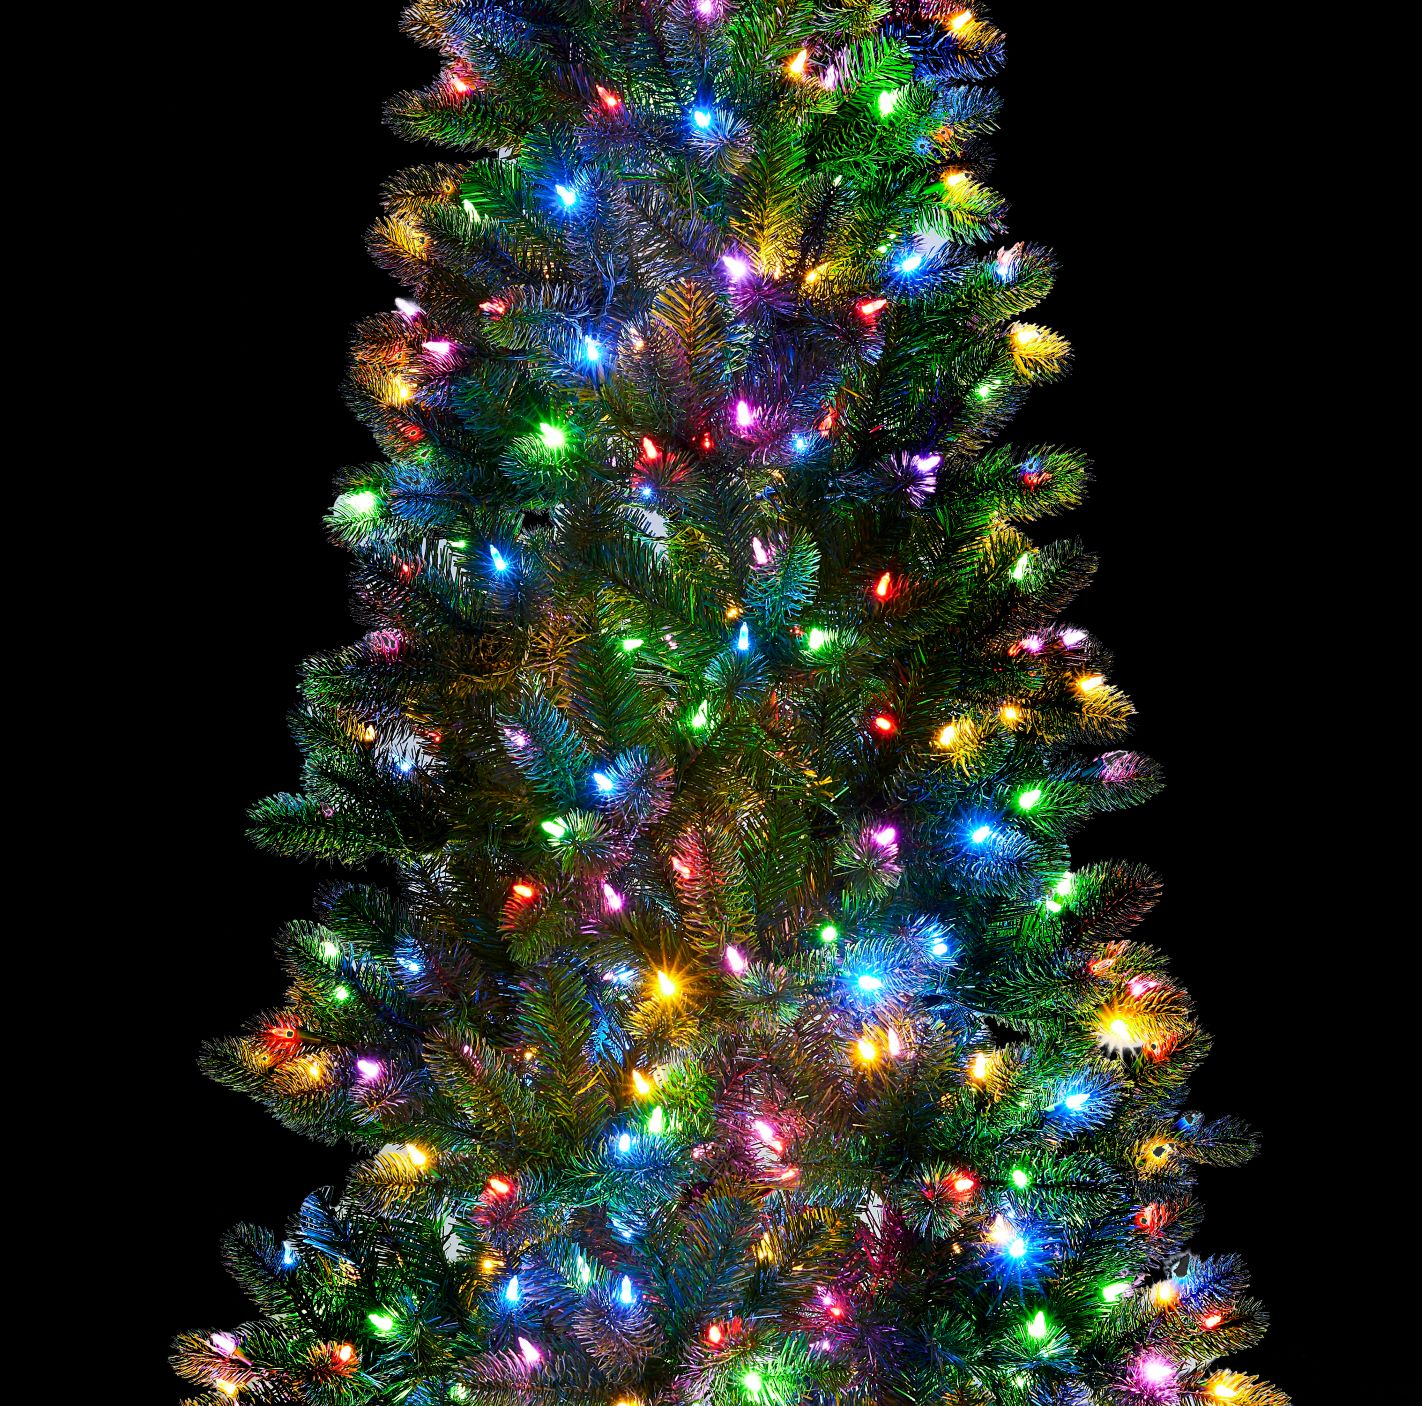 7 5 King Douglas Fir Slim Quick Shape Artificial Christmas Tree 650 Dual Color Led Lights King Of Christmas